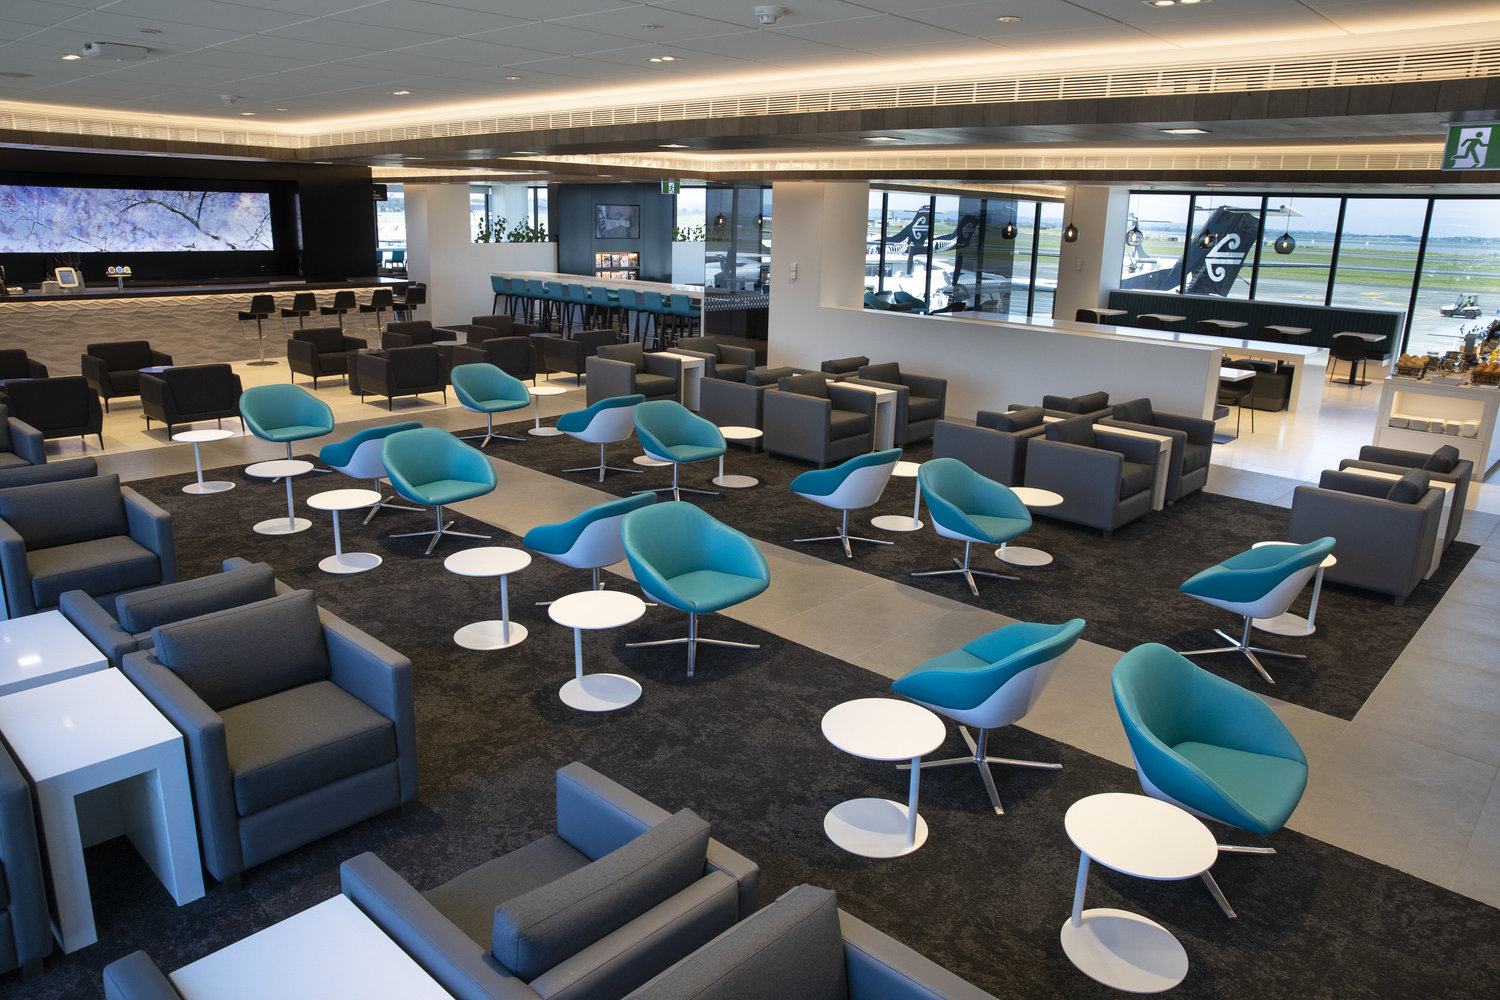 Air New Zealand to open New Auckland Regional Lounge on 16 November 2019